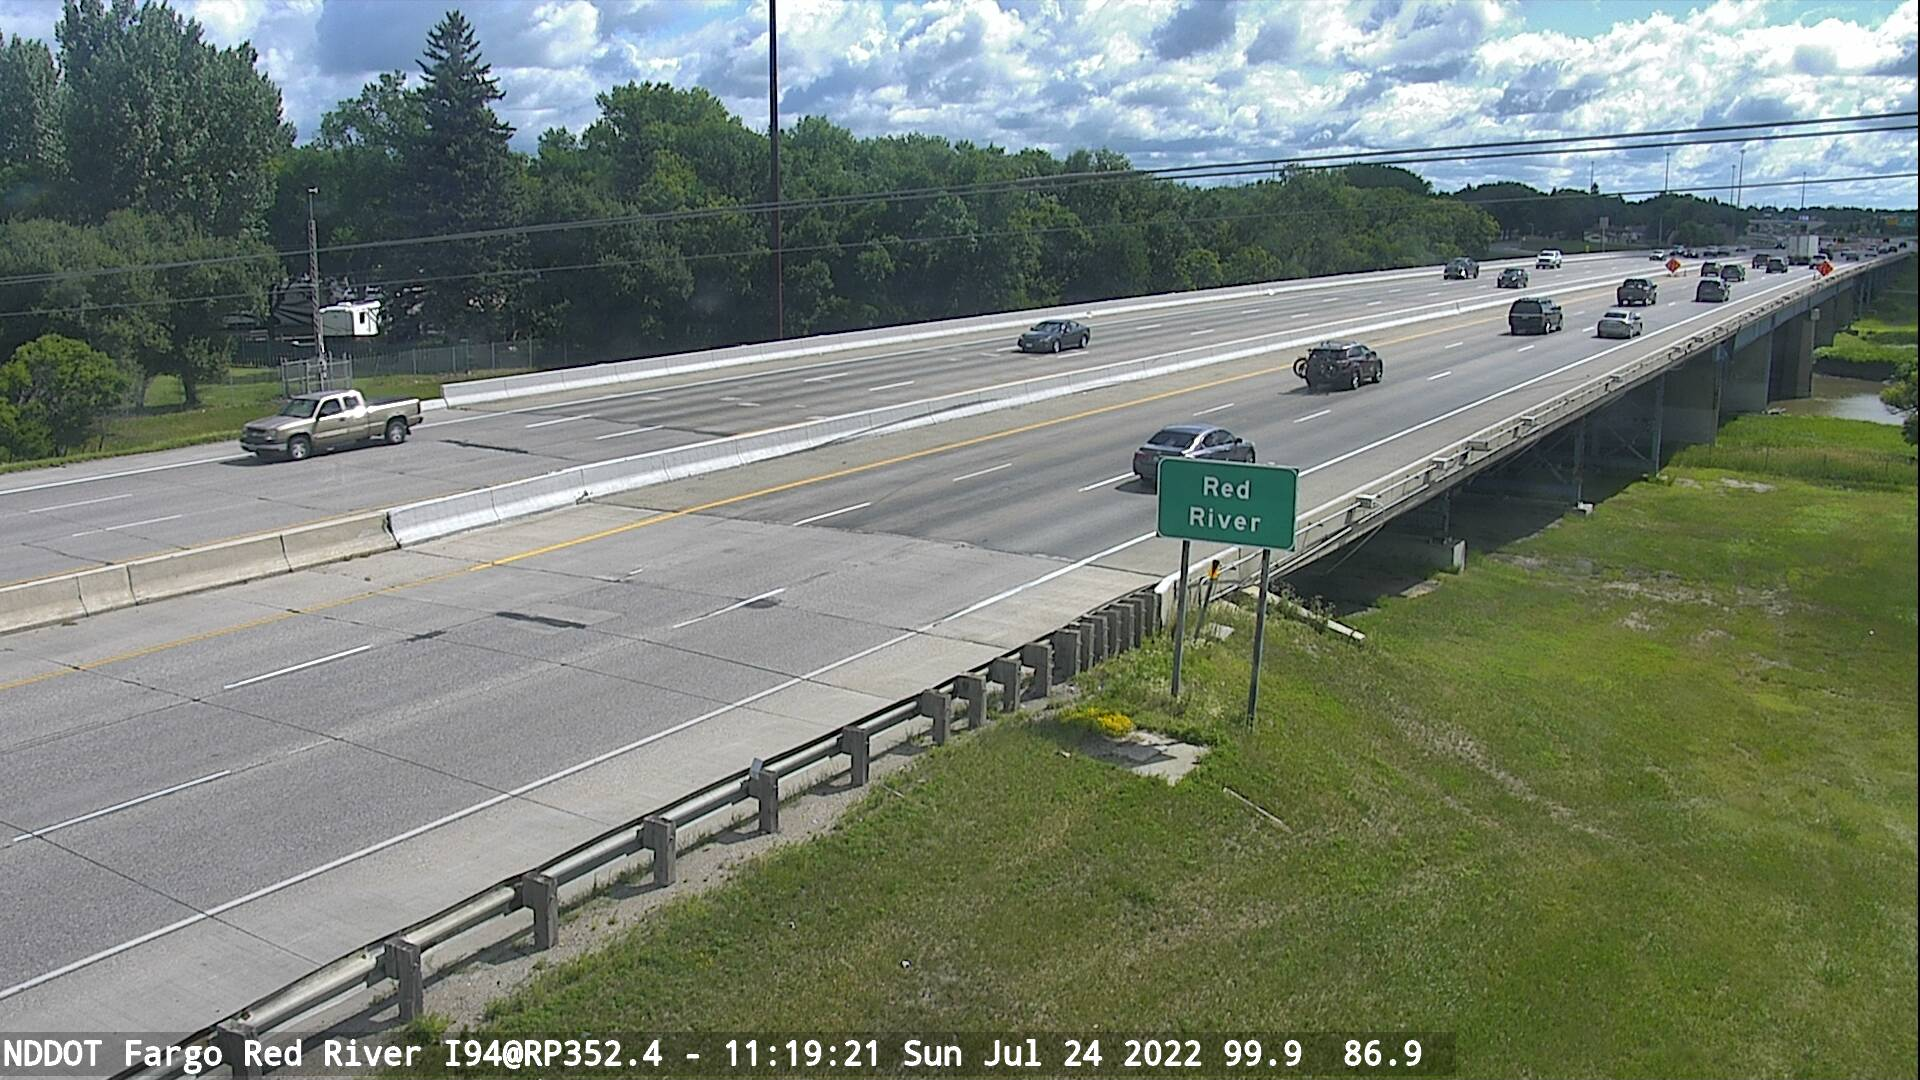 Red River Bridge - East (I 94 MP 352.4) - NDDOT